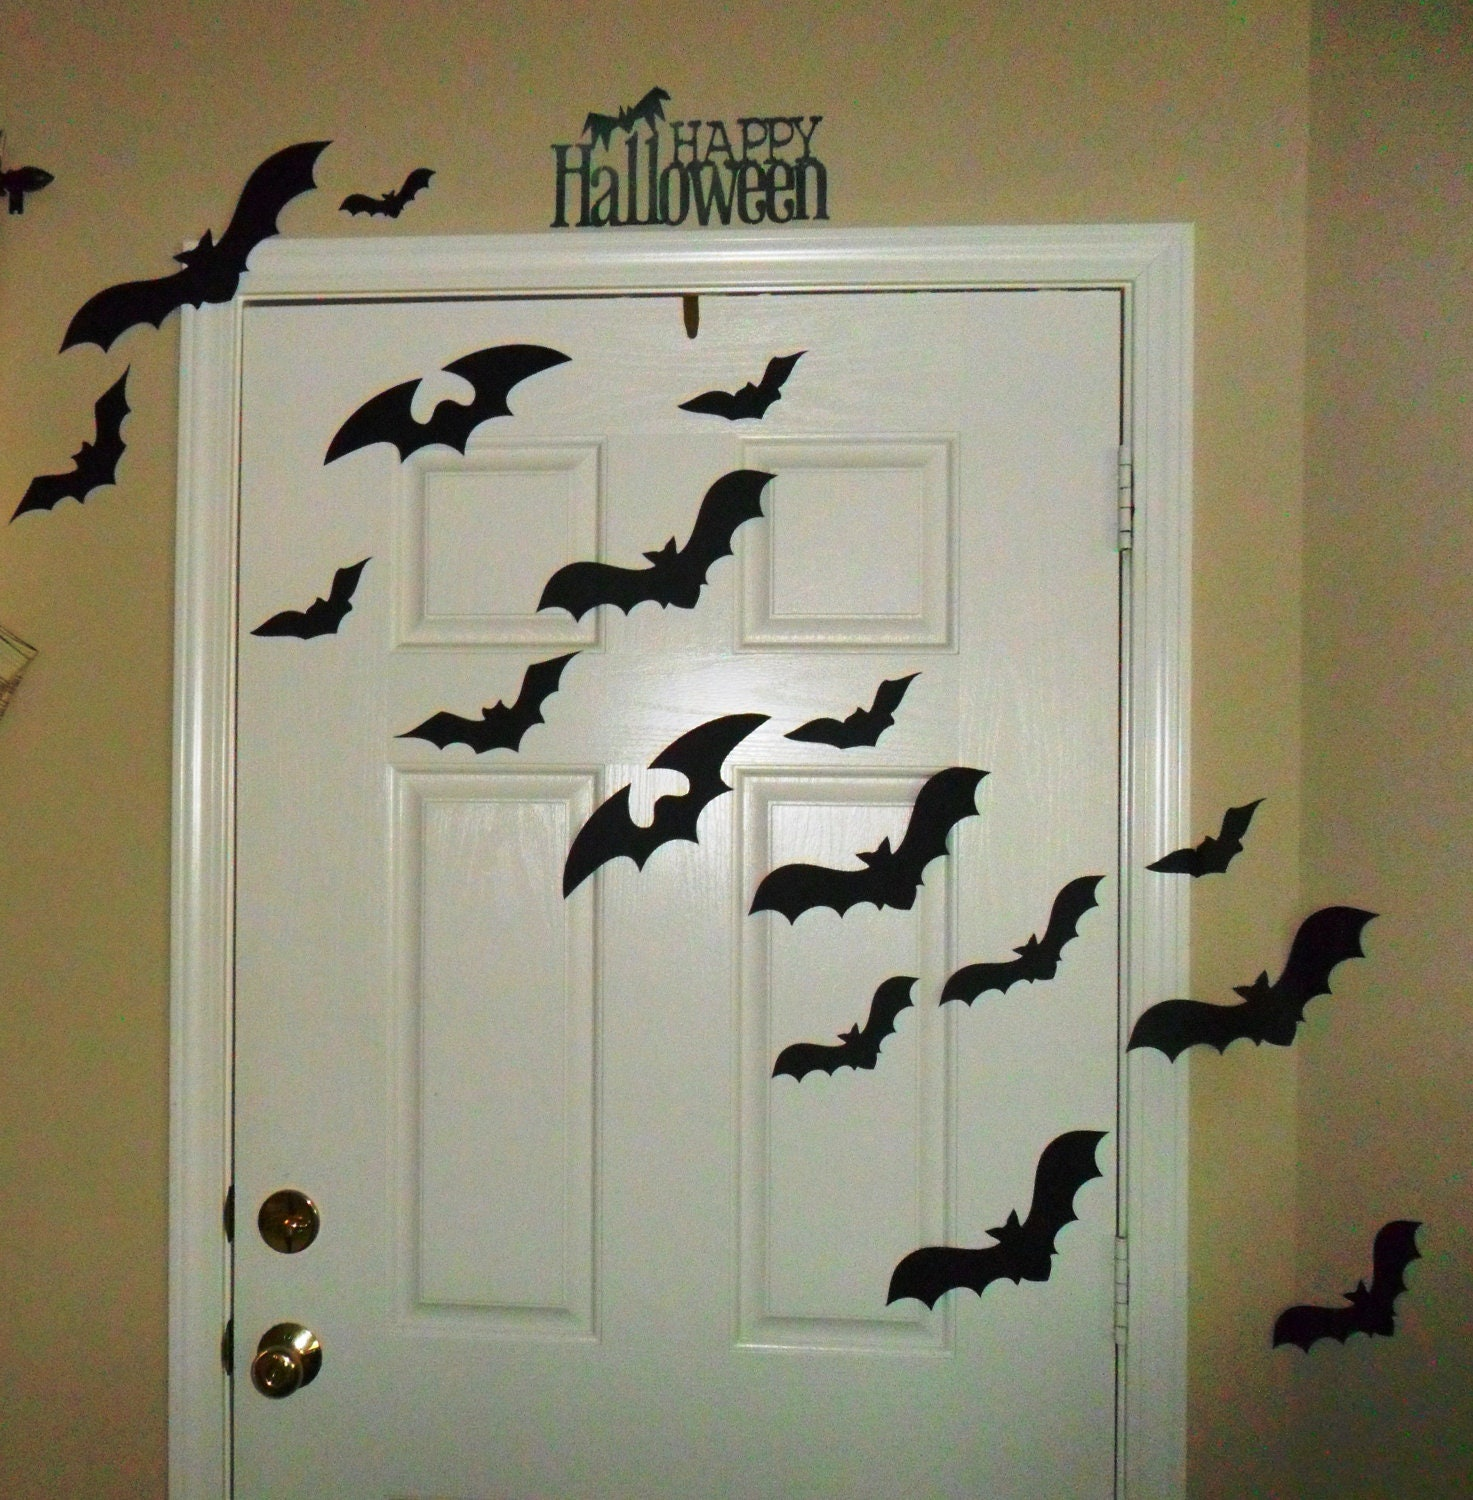 Happy Halloween Tips On Home Decoration 1: Halloween Decoration Halloween Door Decorating Kit With Bats